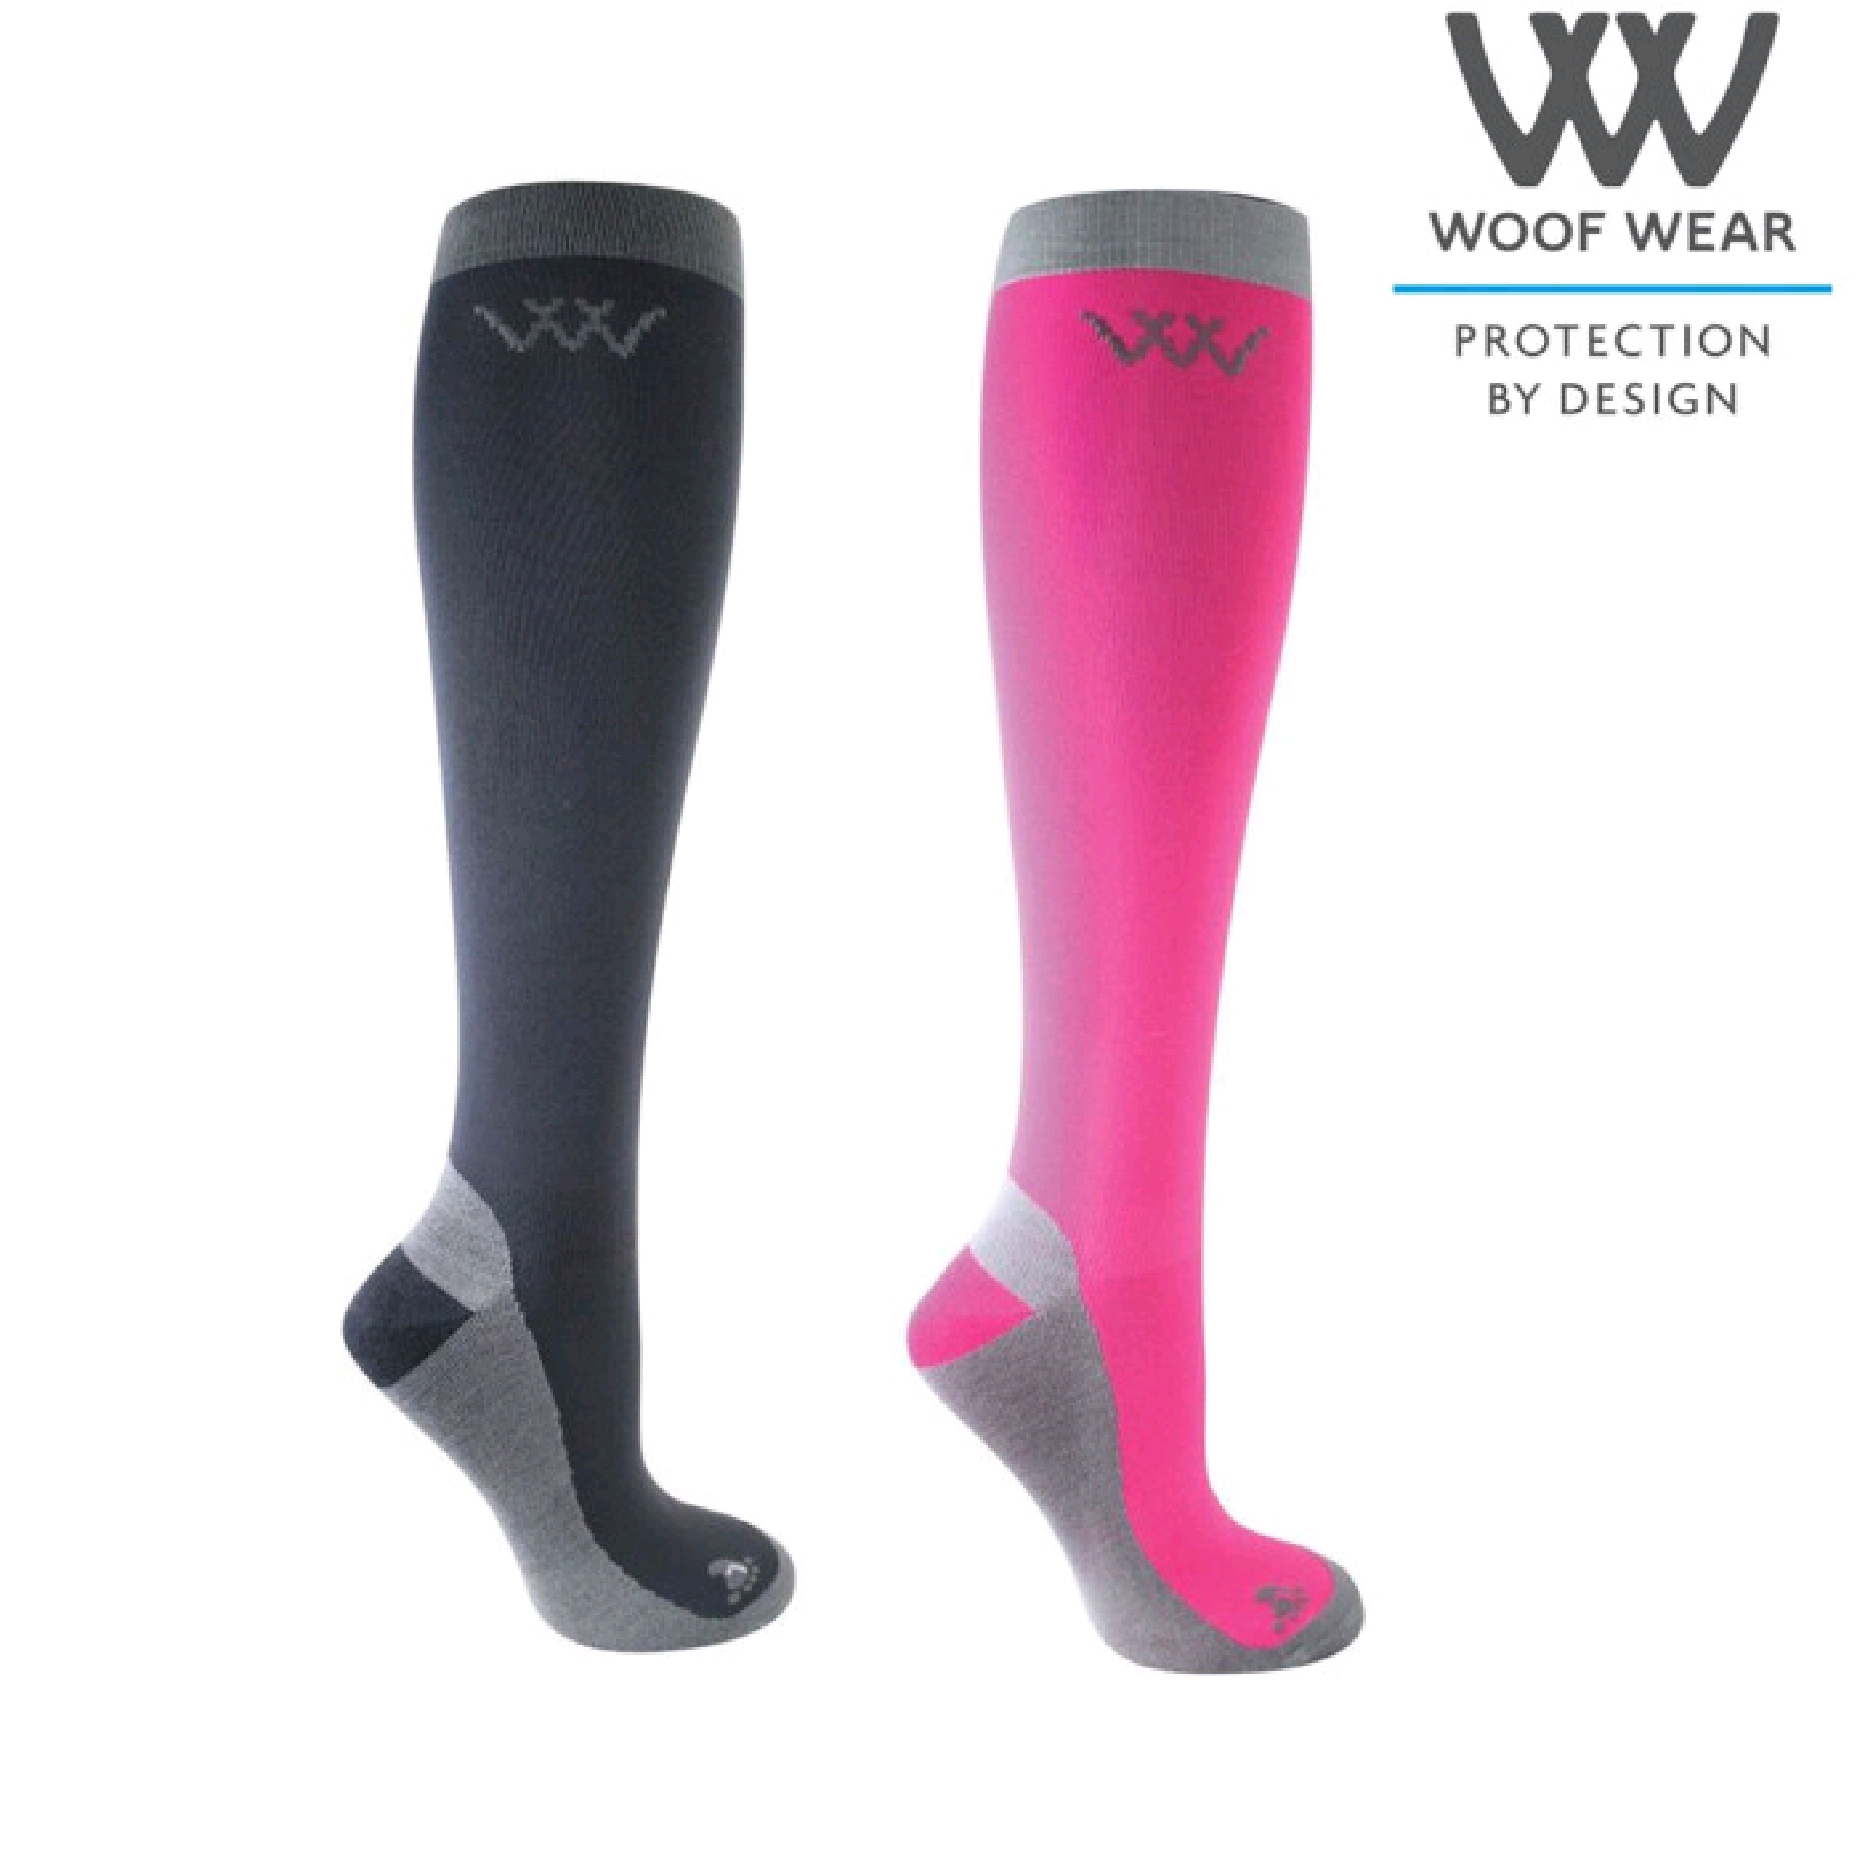 Woof Wear Competition socks